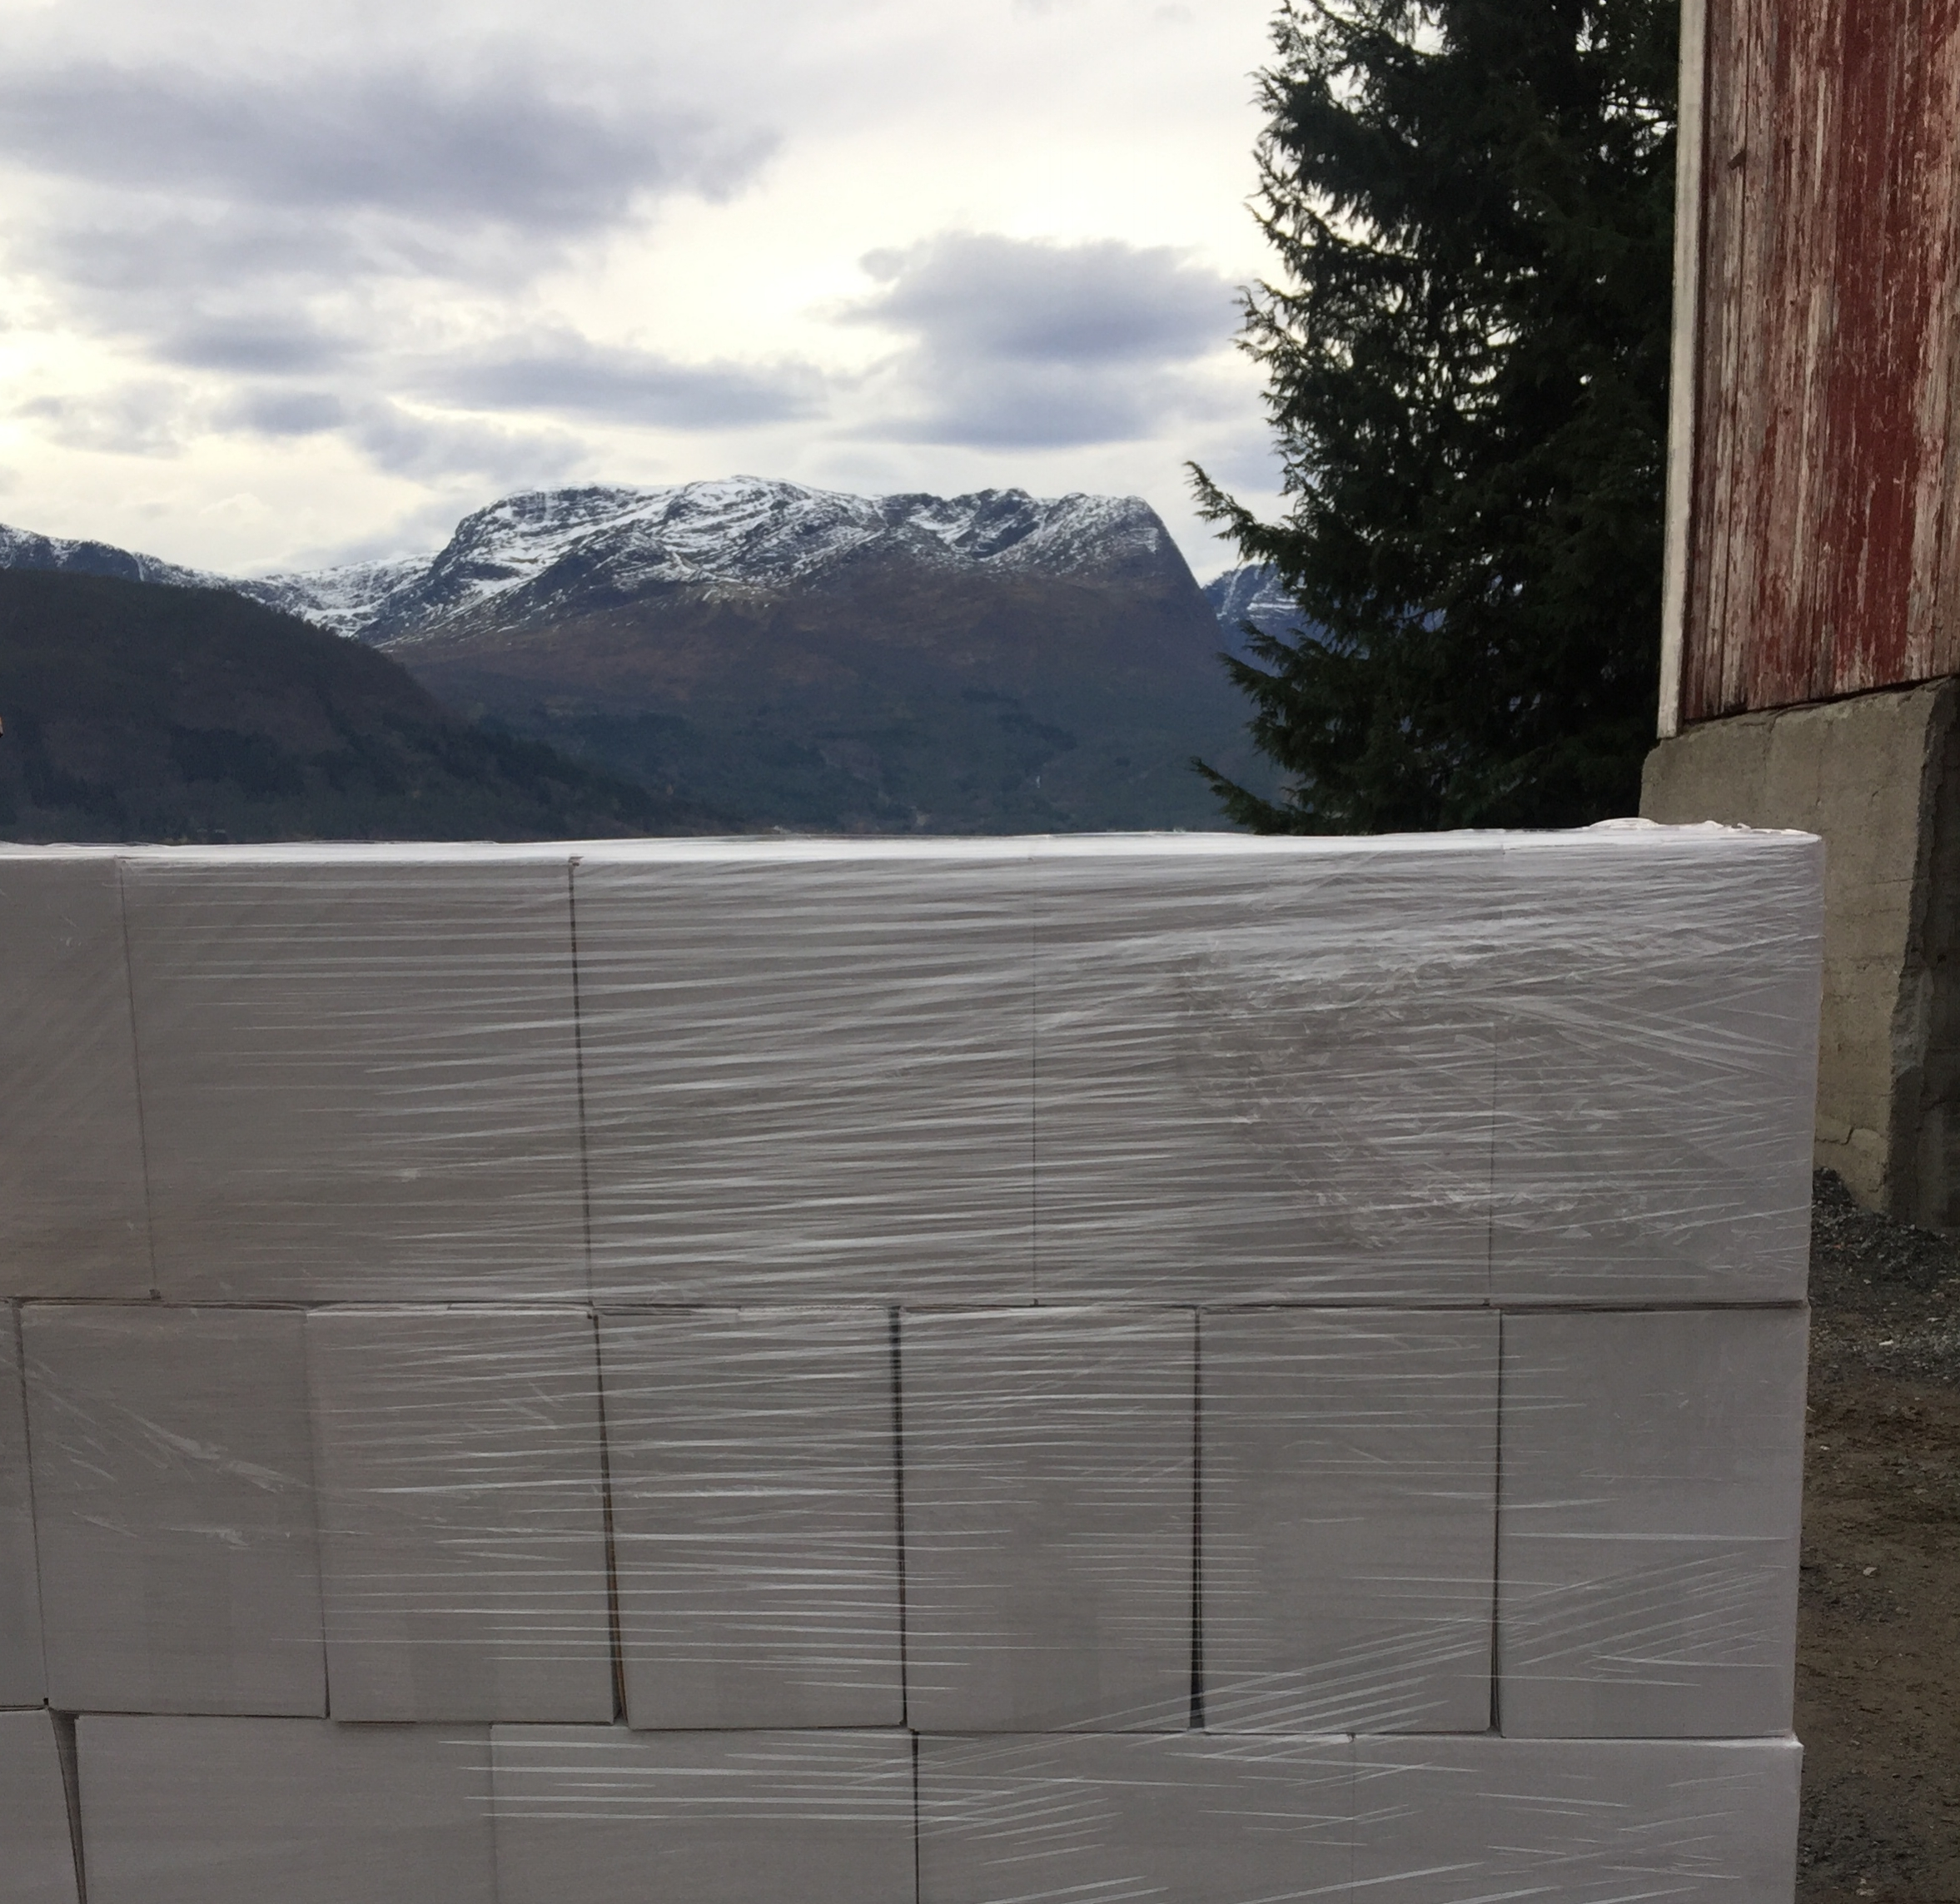 A pallet of Fjording ready for exit from scenic Nordfjord.